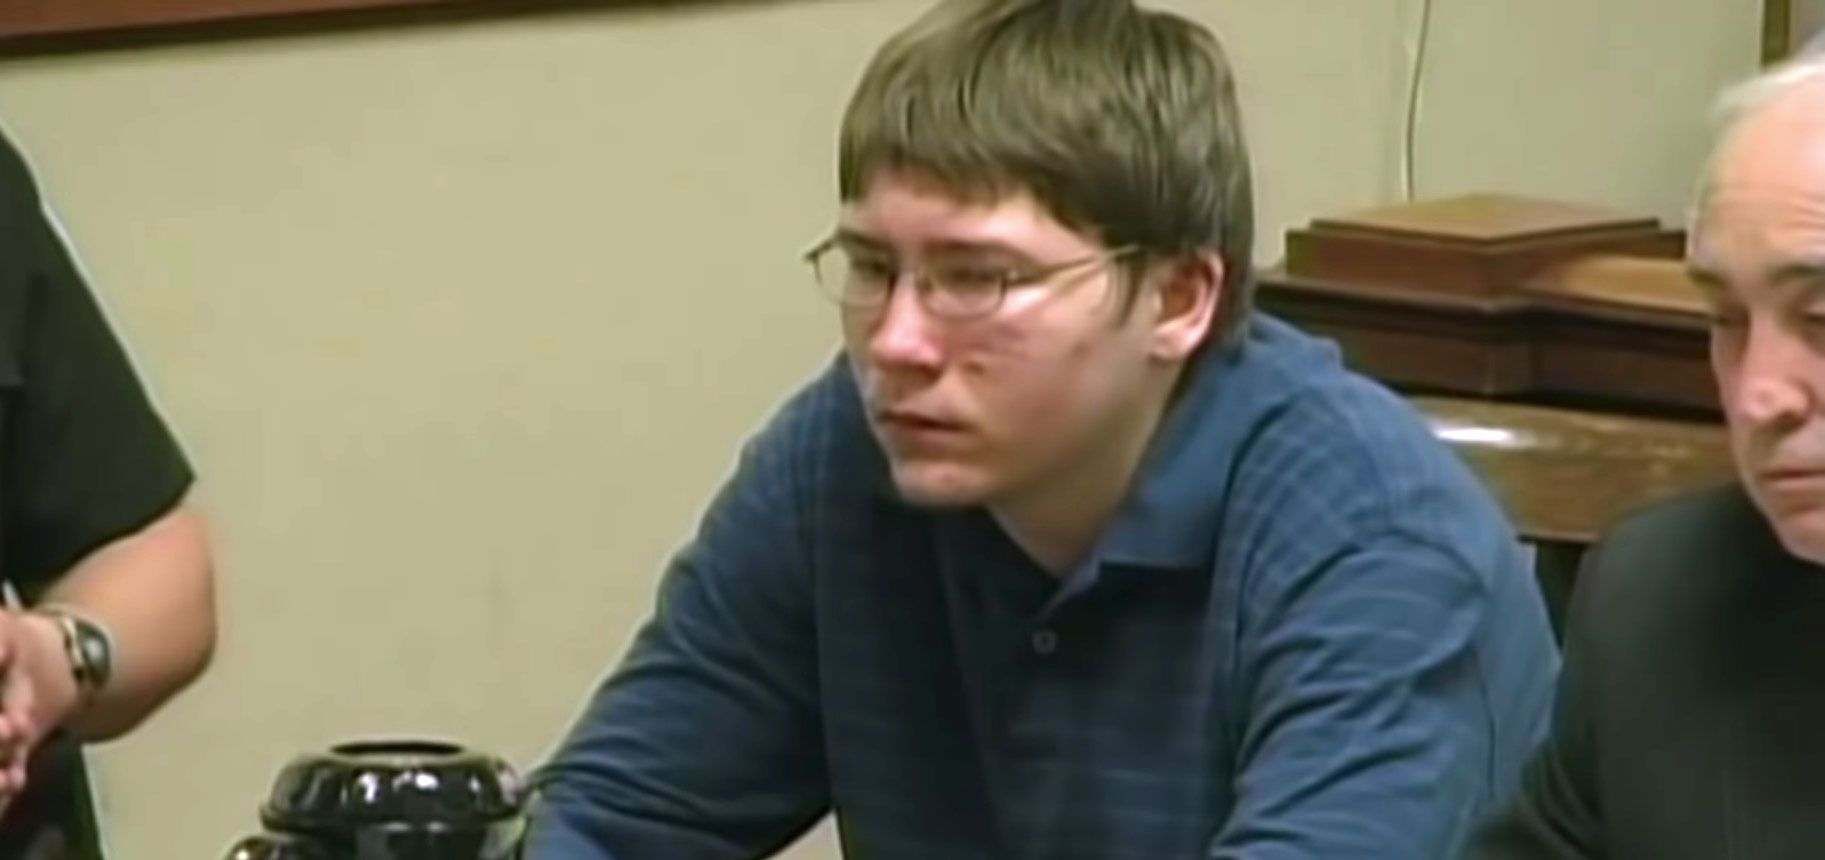 There's been an unexpected twist in the Making a Murderer case - here's how it came about